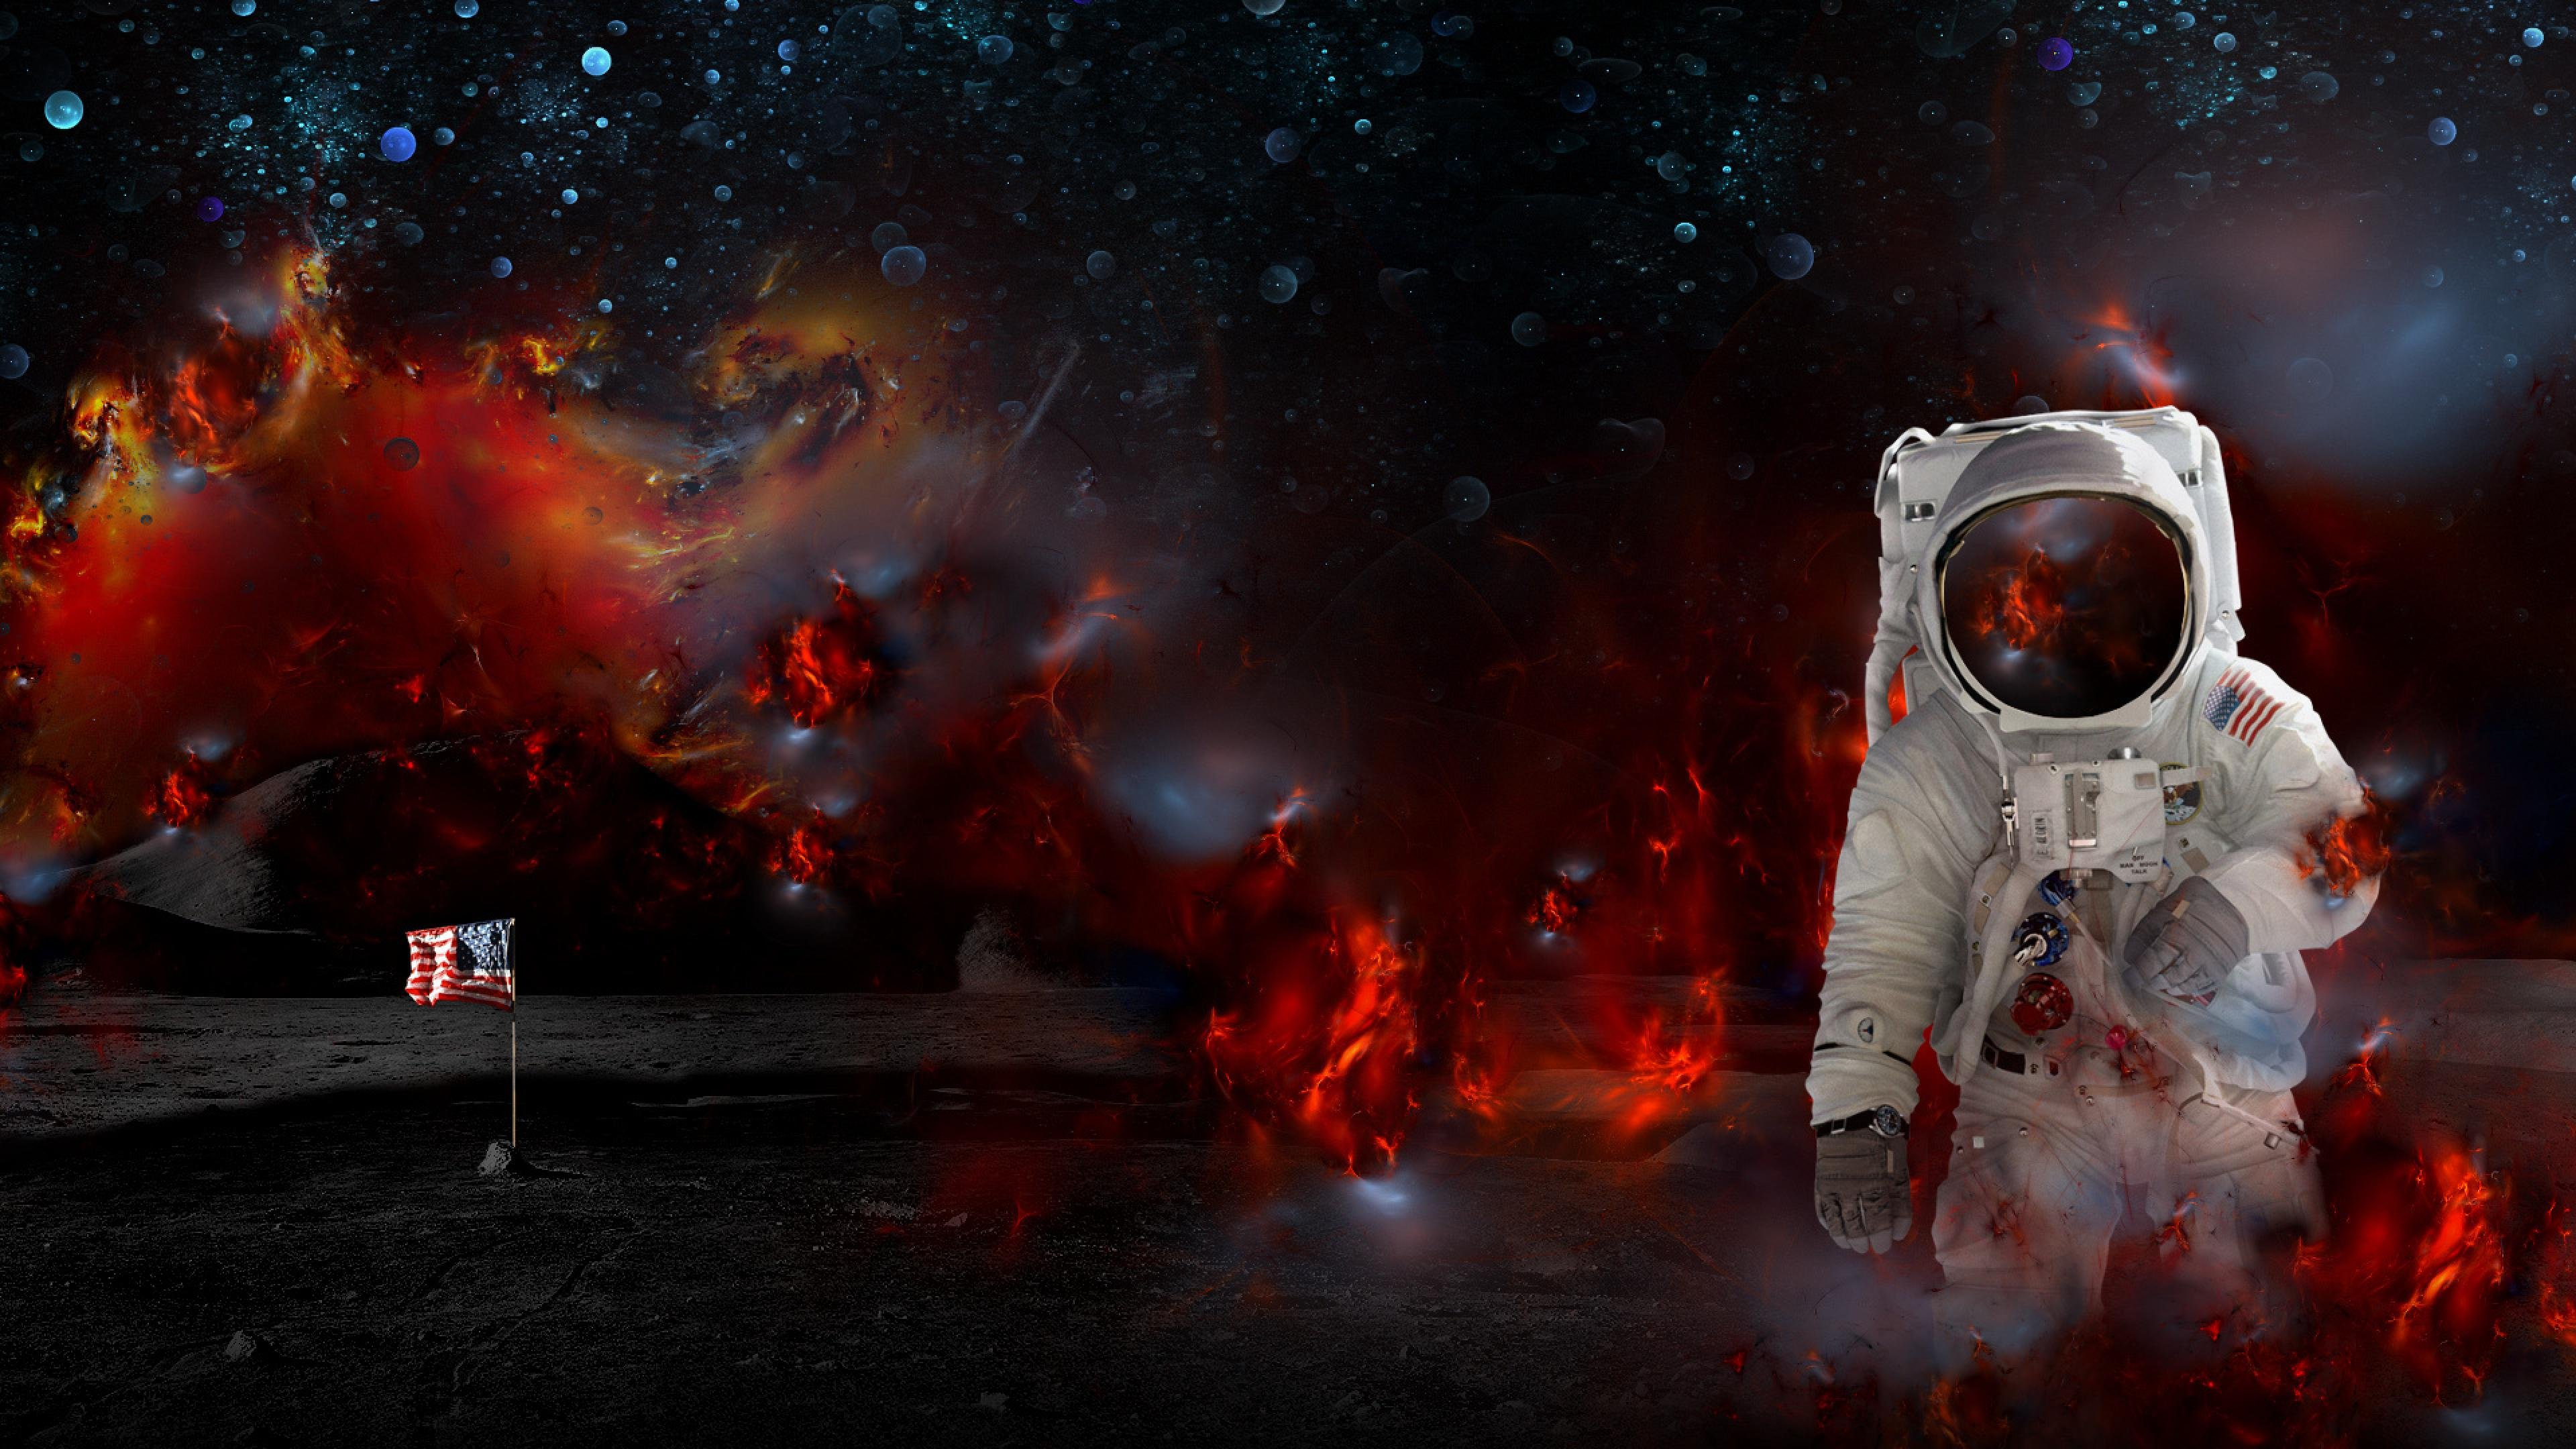 Astronaut nasa space sci-fi fire psychedelic wallpaper ...